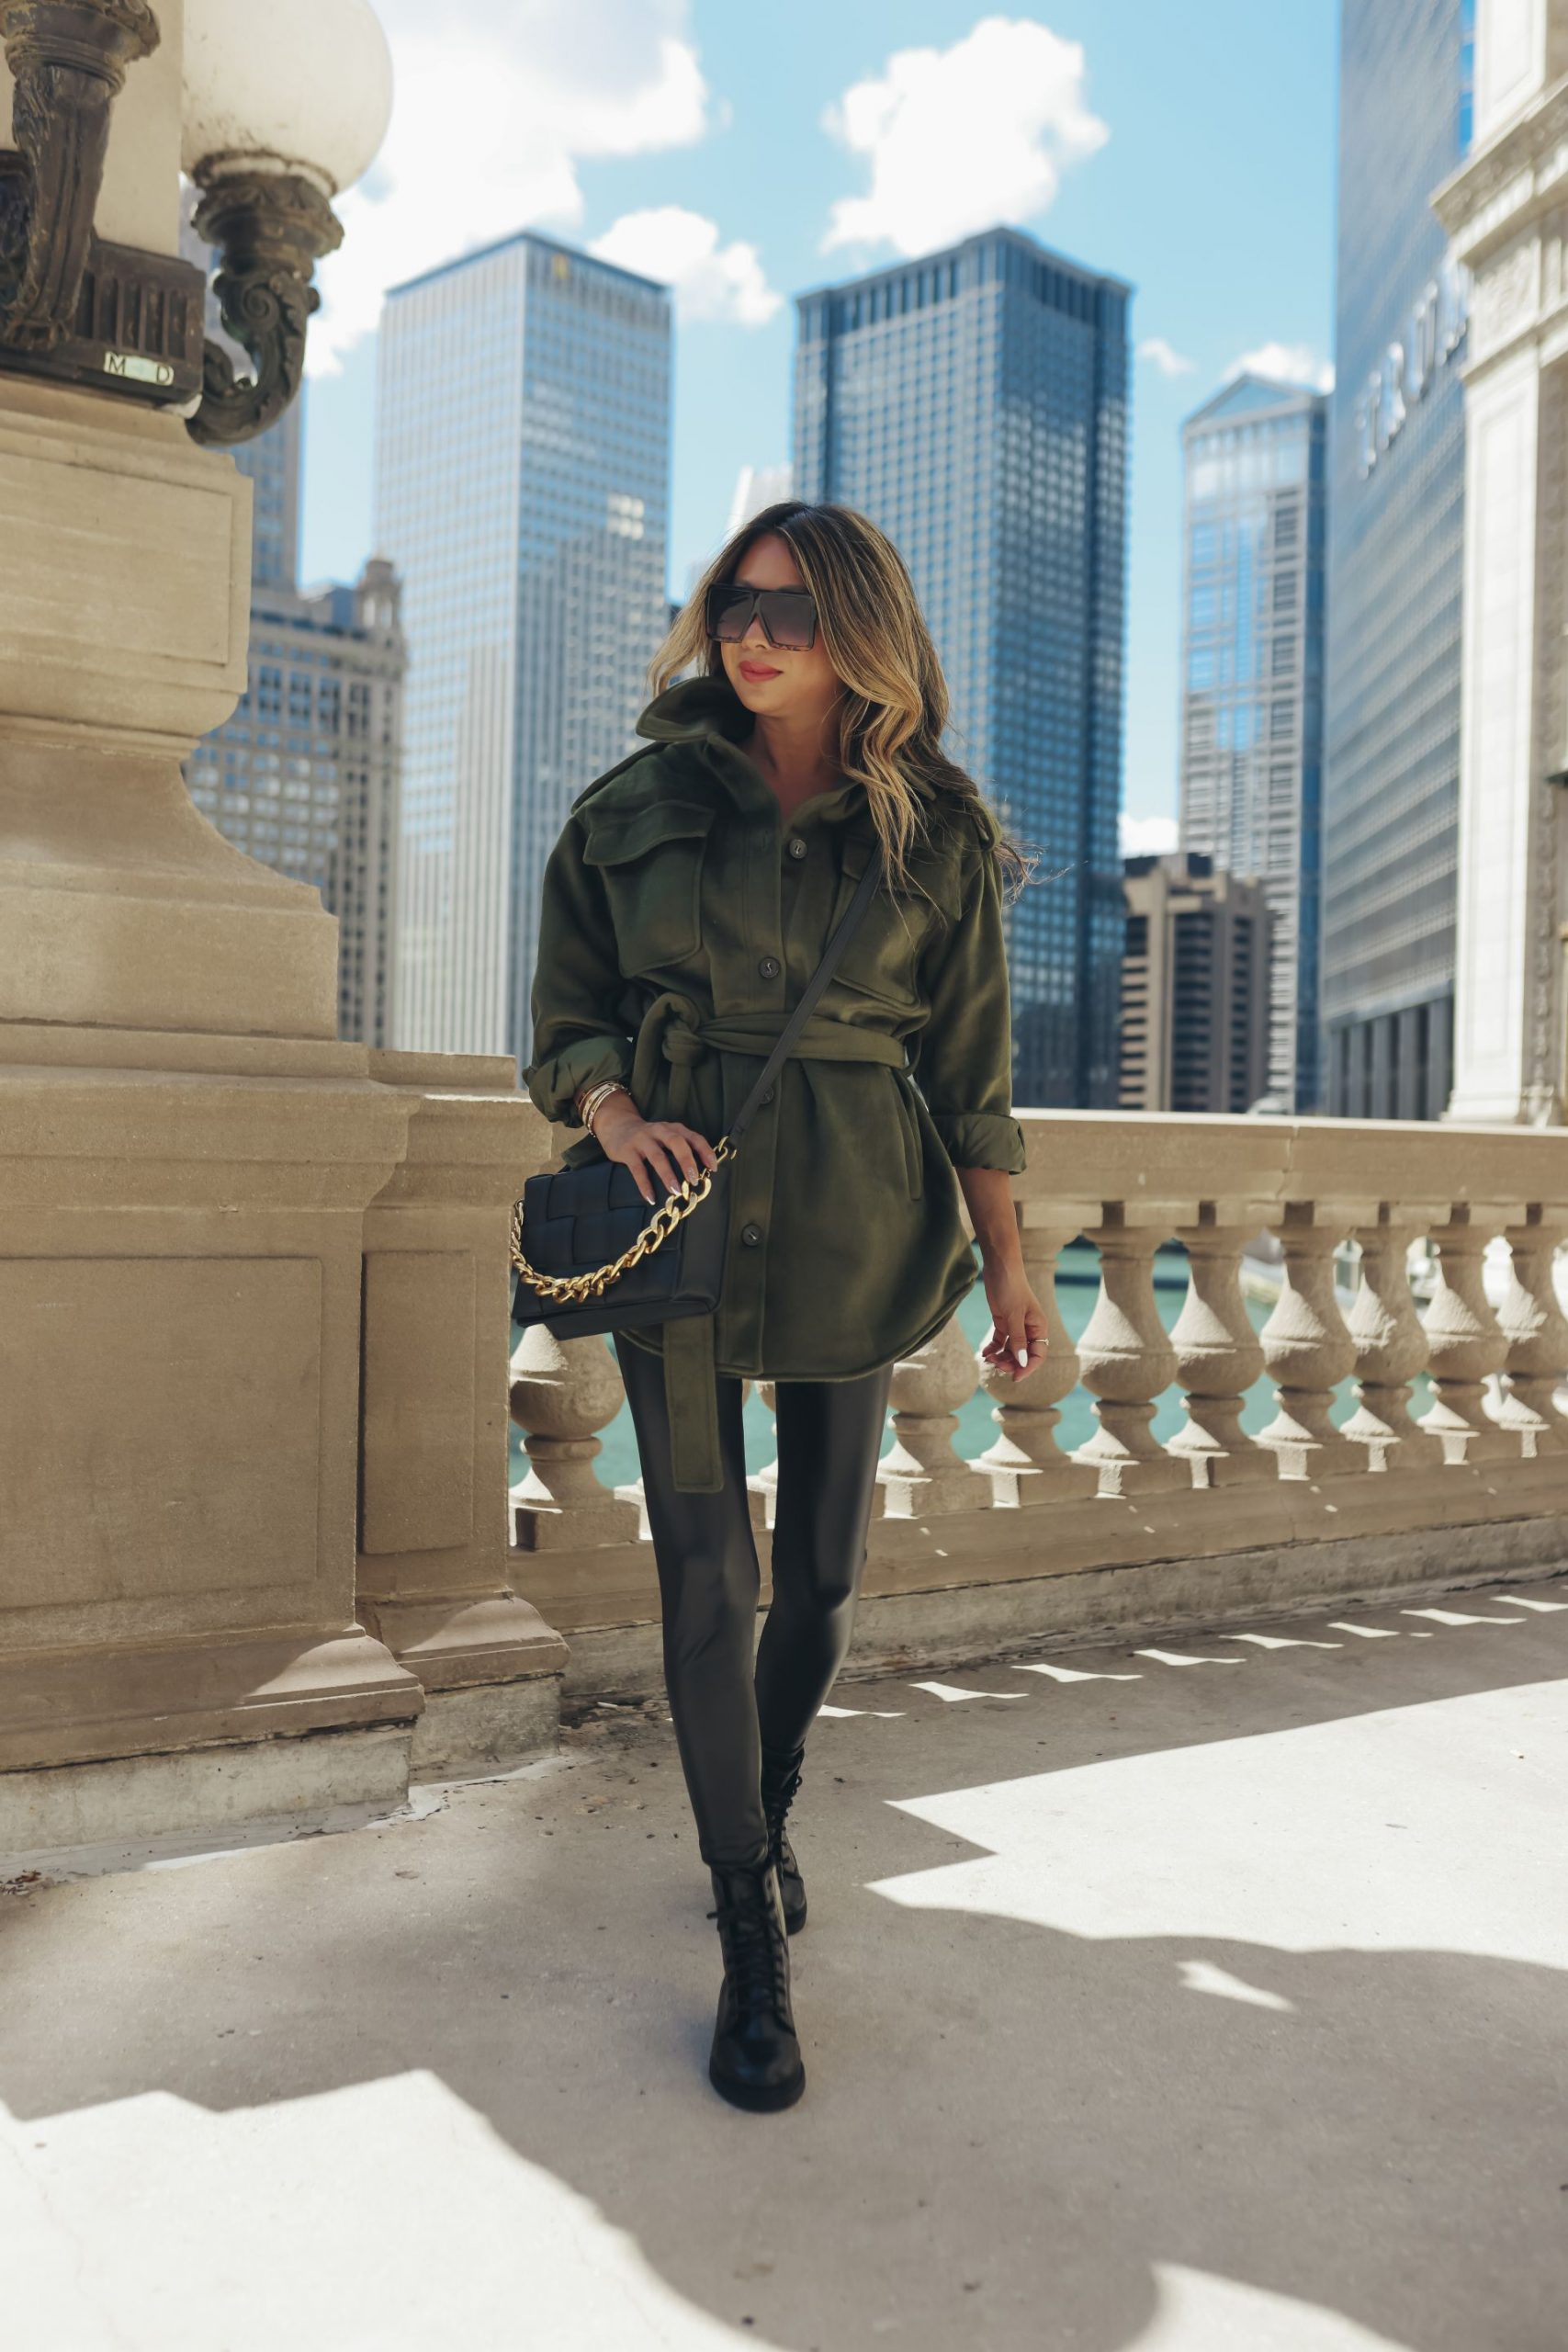 Fall Fashion under $50 from Walmart, Fall Fashion under $50 from Walmart, fall outfit inspiration, fall outfit ideas, affordable fall fashion, affordable fall outfits, affordable fall style, fall outfit inspo, fall women's outfits, cold weather style, green shacket, shacket outfit ideas, olive greenshacket outfit, oversized shacket outfit,faux vegan leather leggings outfit,faux vegan leather leggings style,Red Soles and Red Wine, jennifer Worman, fall outfit photography, style photography ideas, fall style aesthetic